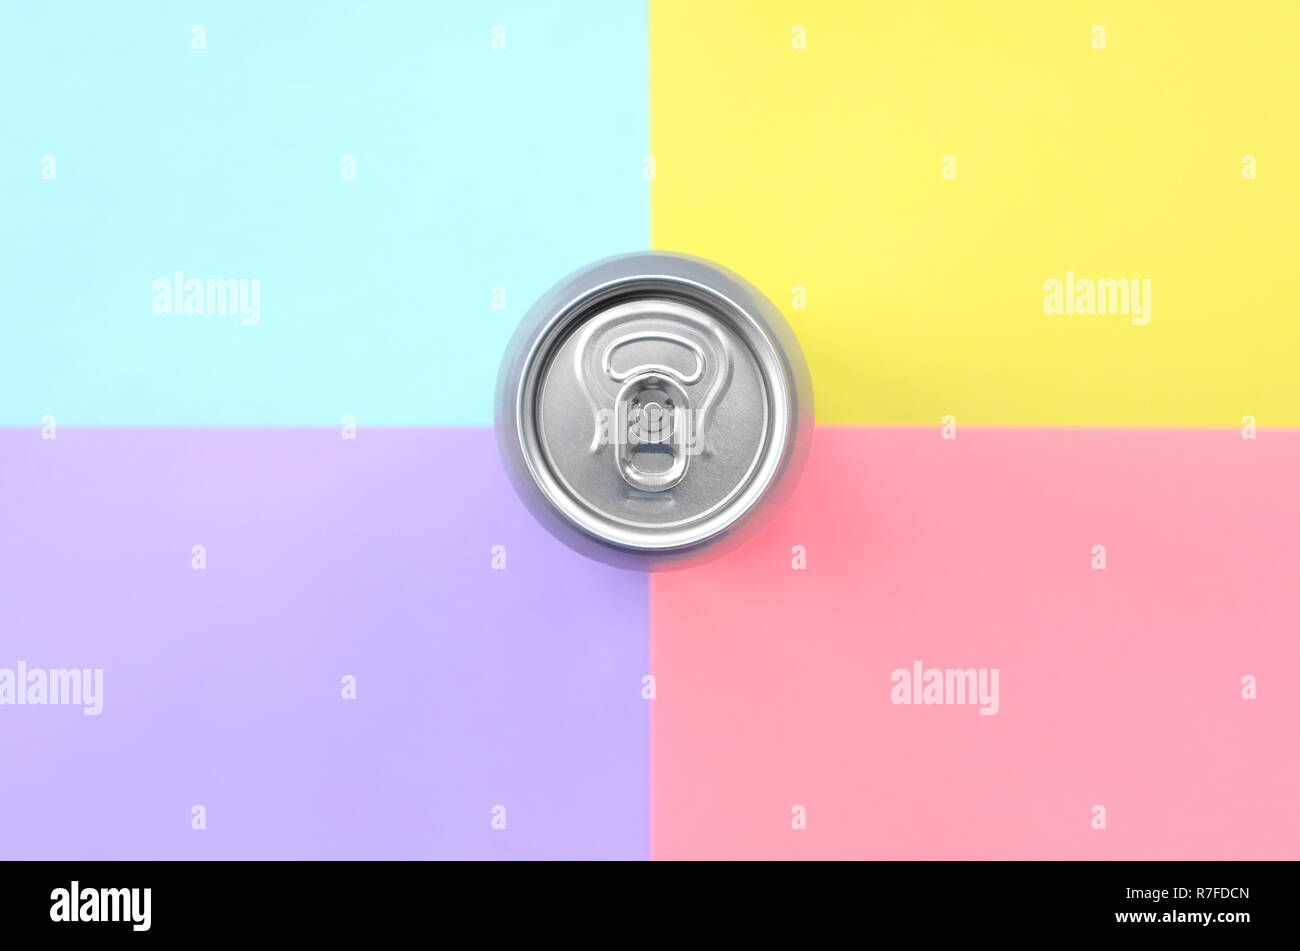 Tin aluminum silver beer can on a pastel background. Minimal flat lay top view. Living coral, violet, blue and yellow colors - Stock Image